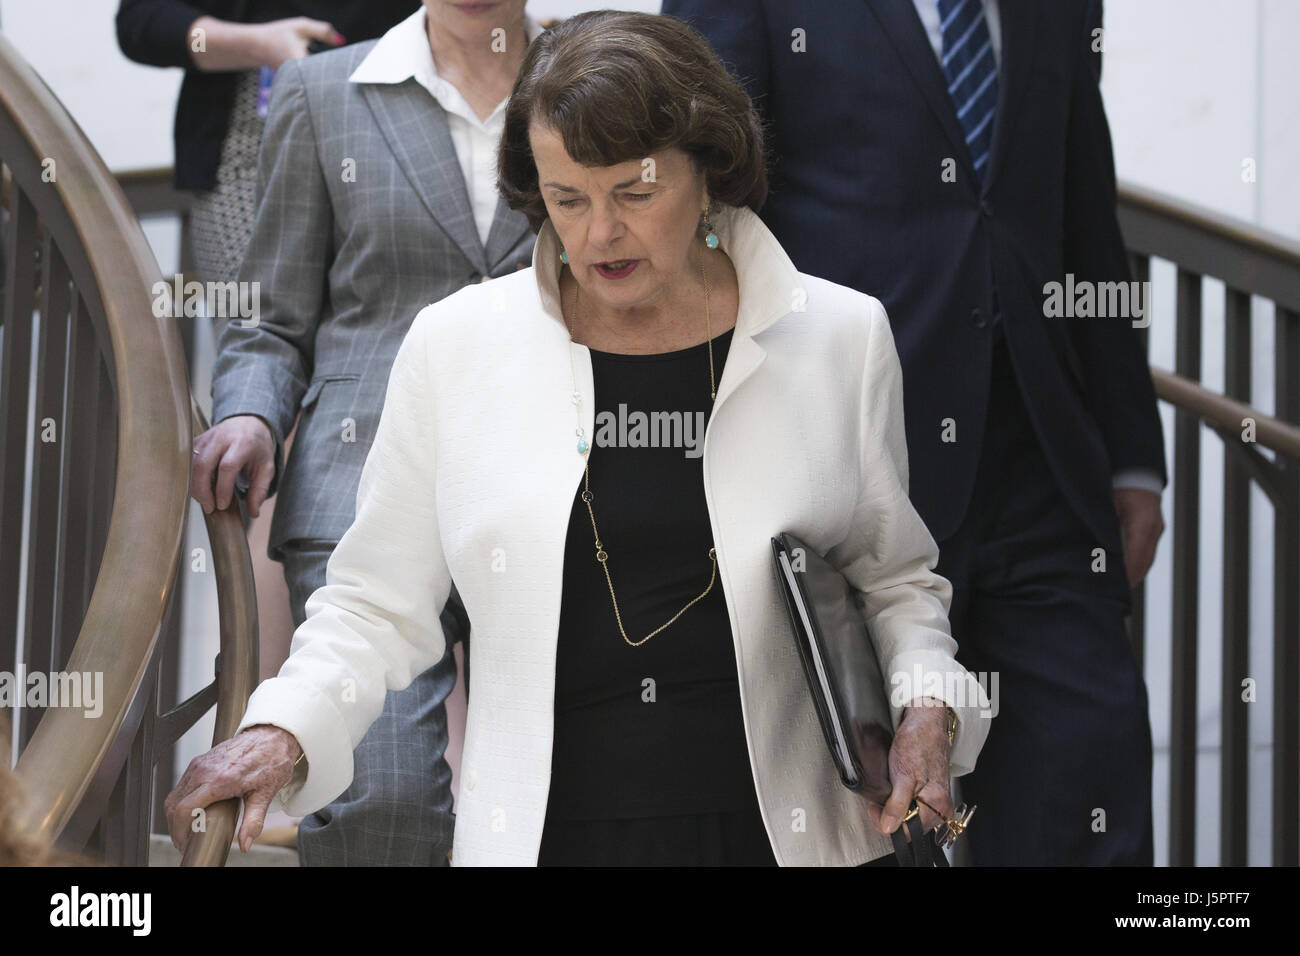 Washington, DIstrict Of Columbia, USA. 18th May, 2017. Senator DIANNE FEINSTEIN (D-CA) arrives at an all senators - Stock Image